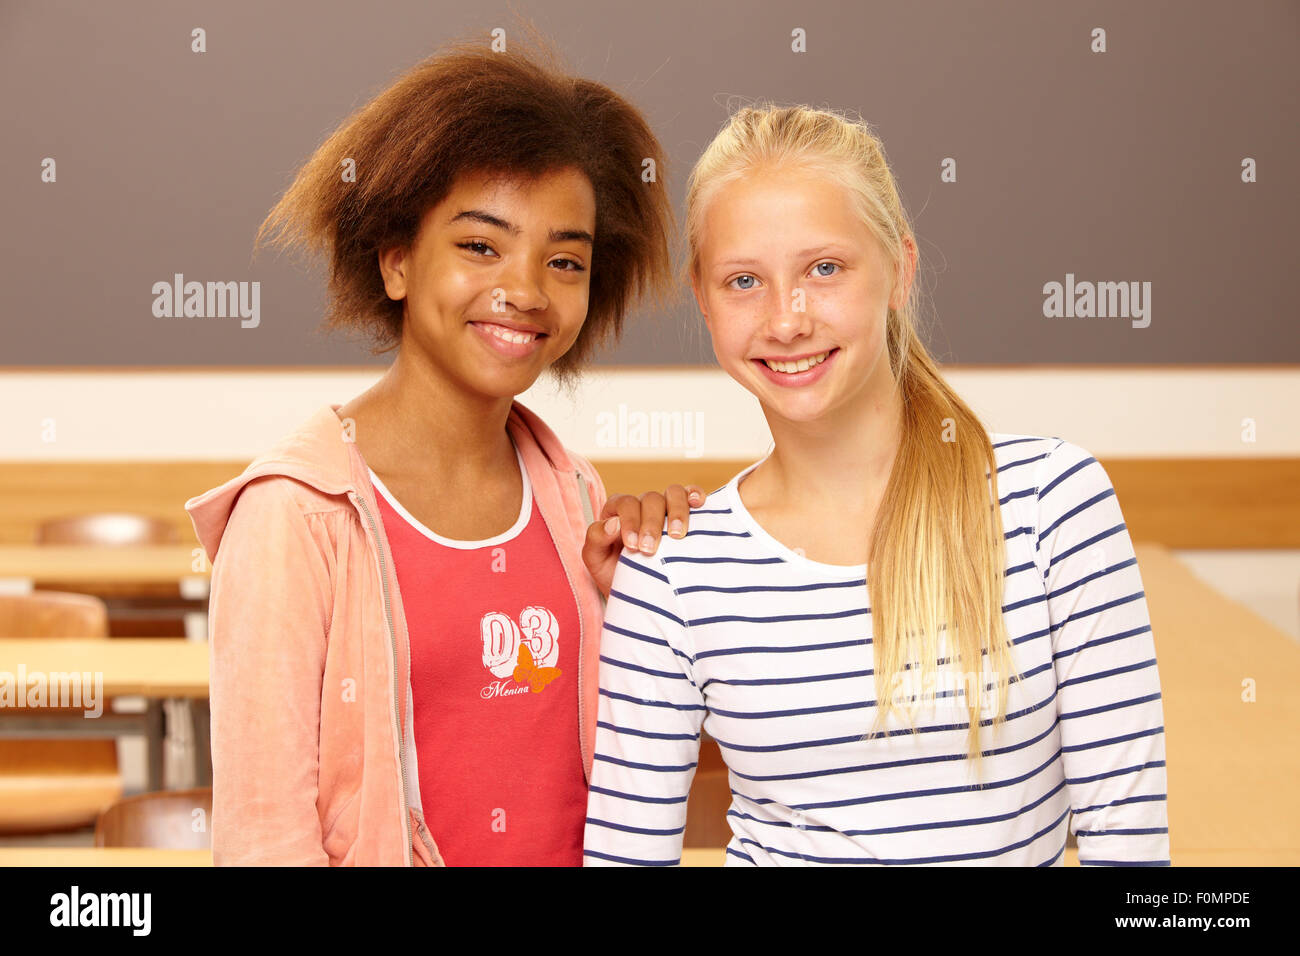 Two girls in school - Stock Image